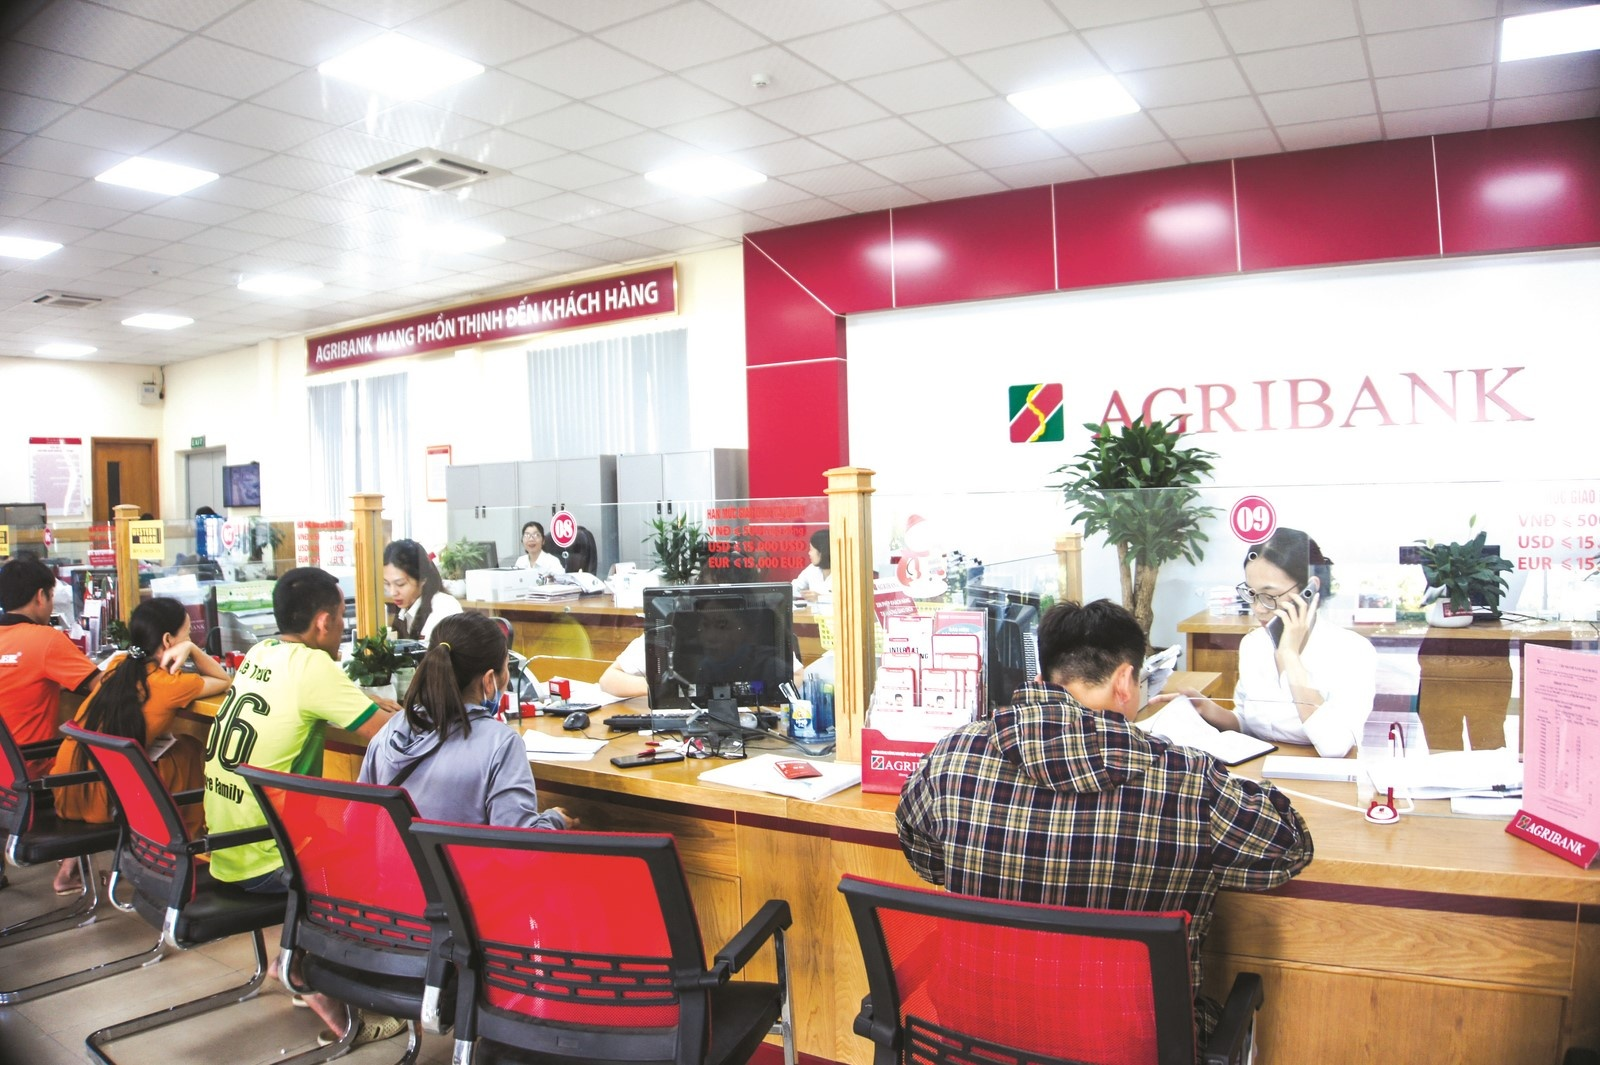 agribank kenh thanh toan dich vu cong quoc gia